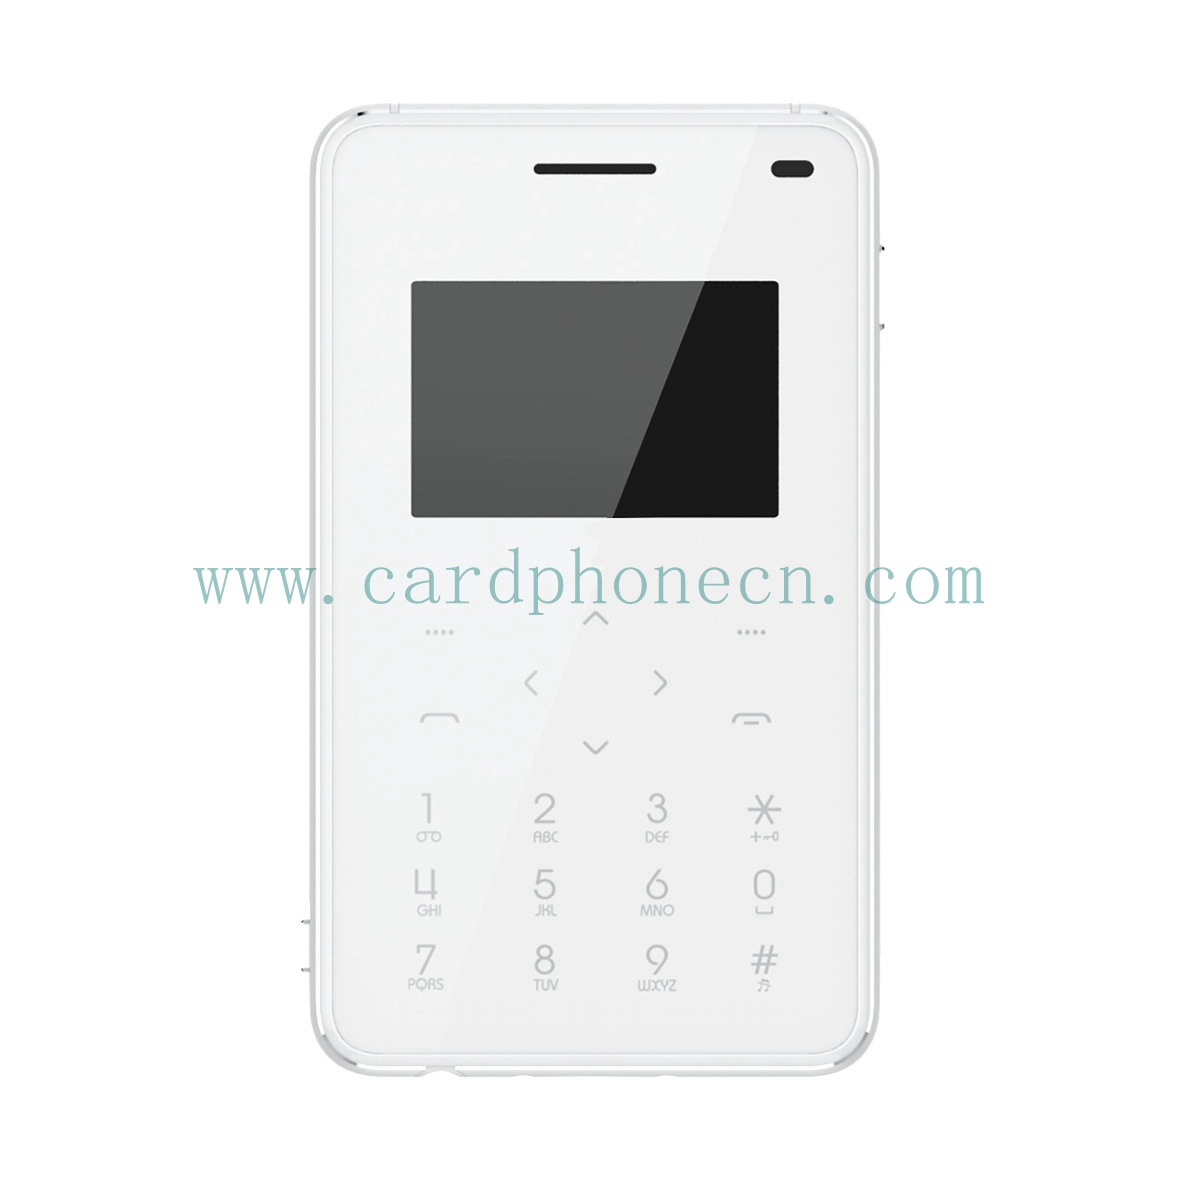 SOYES Card Phone H3 with Dual Standby